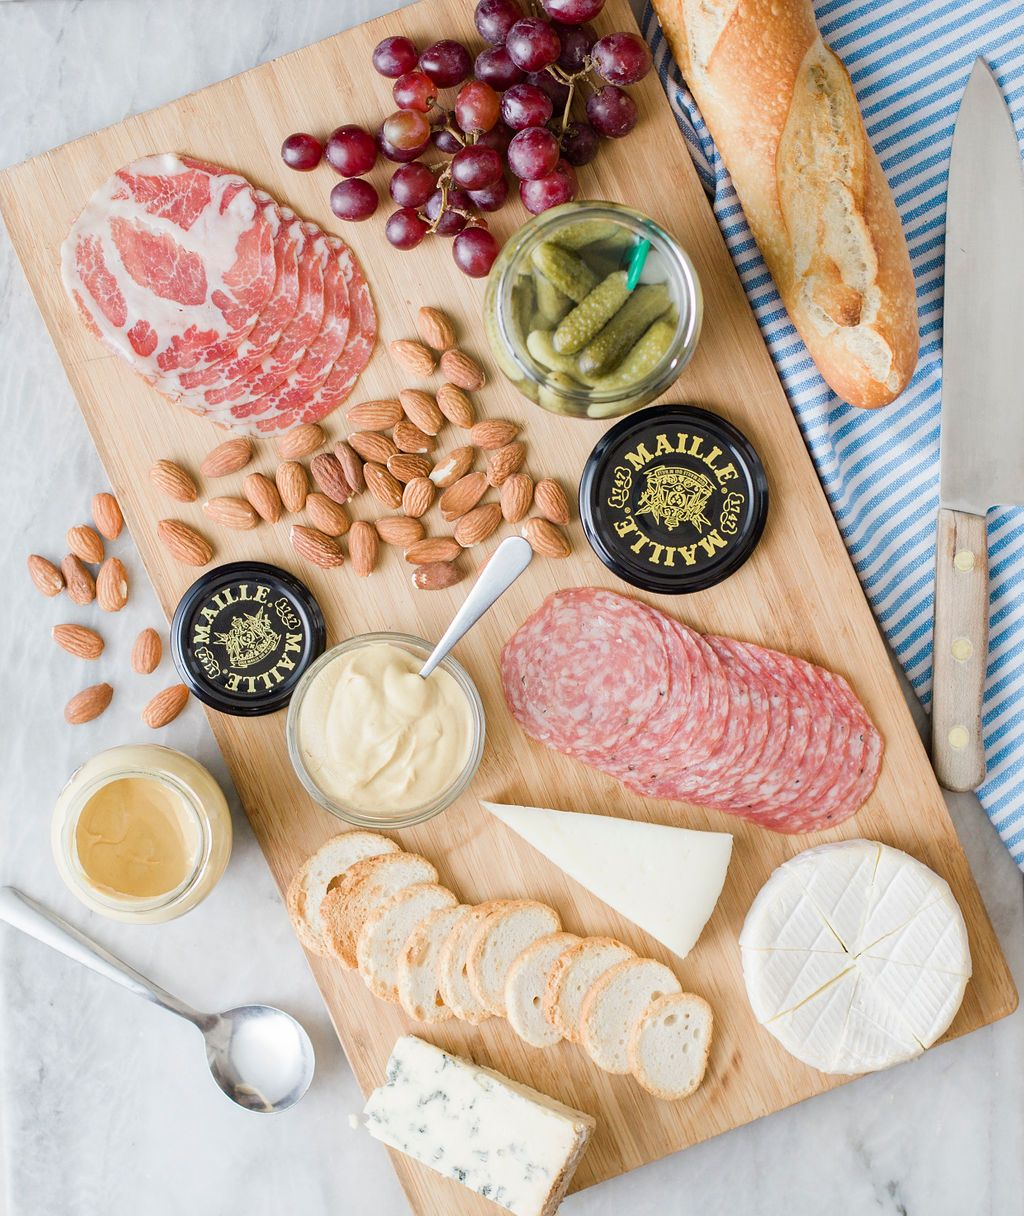 Diy charcuterie board easy holiday recipes charcuterie